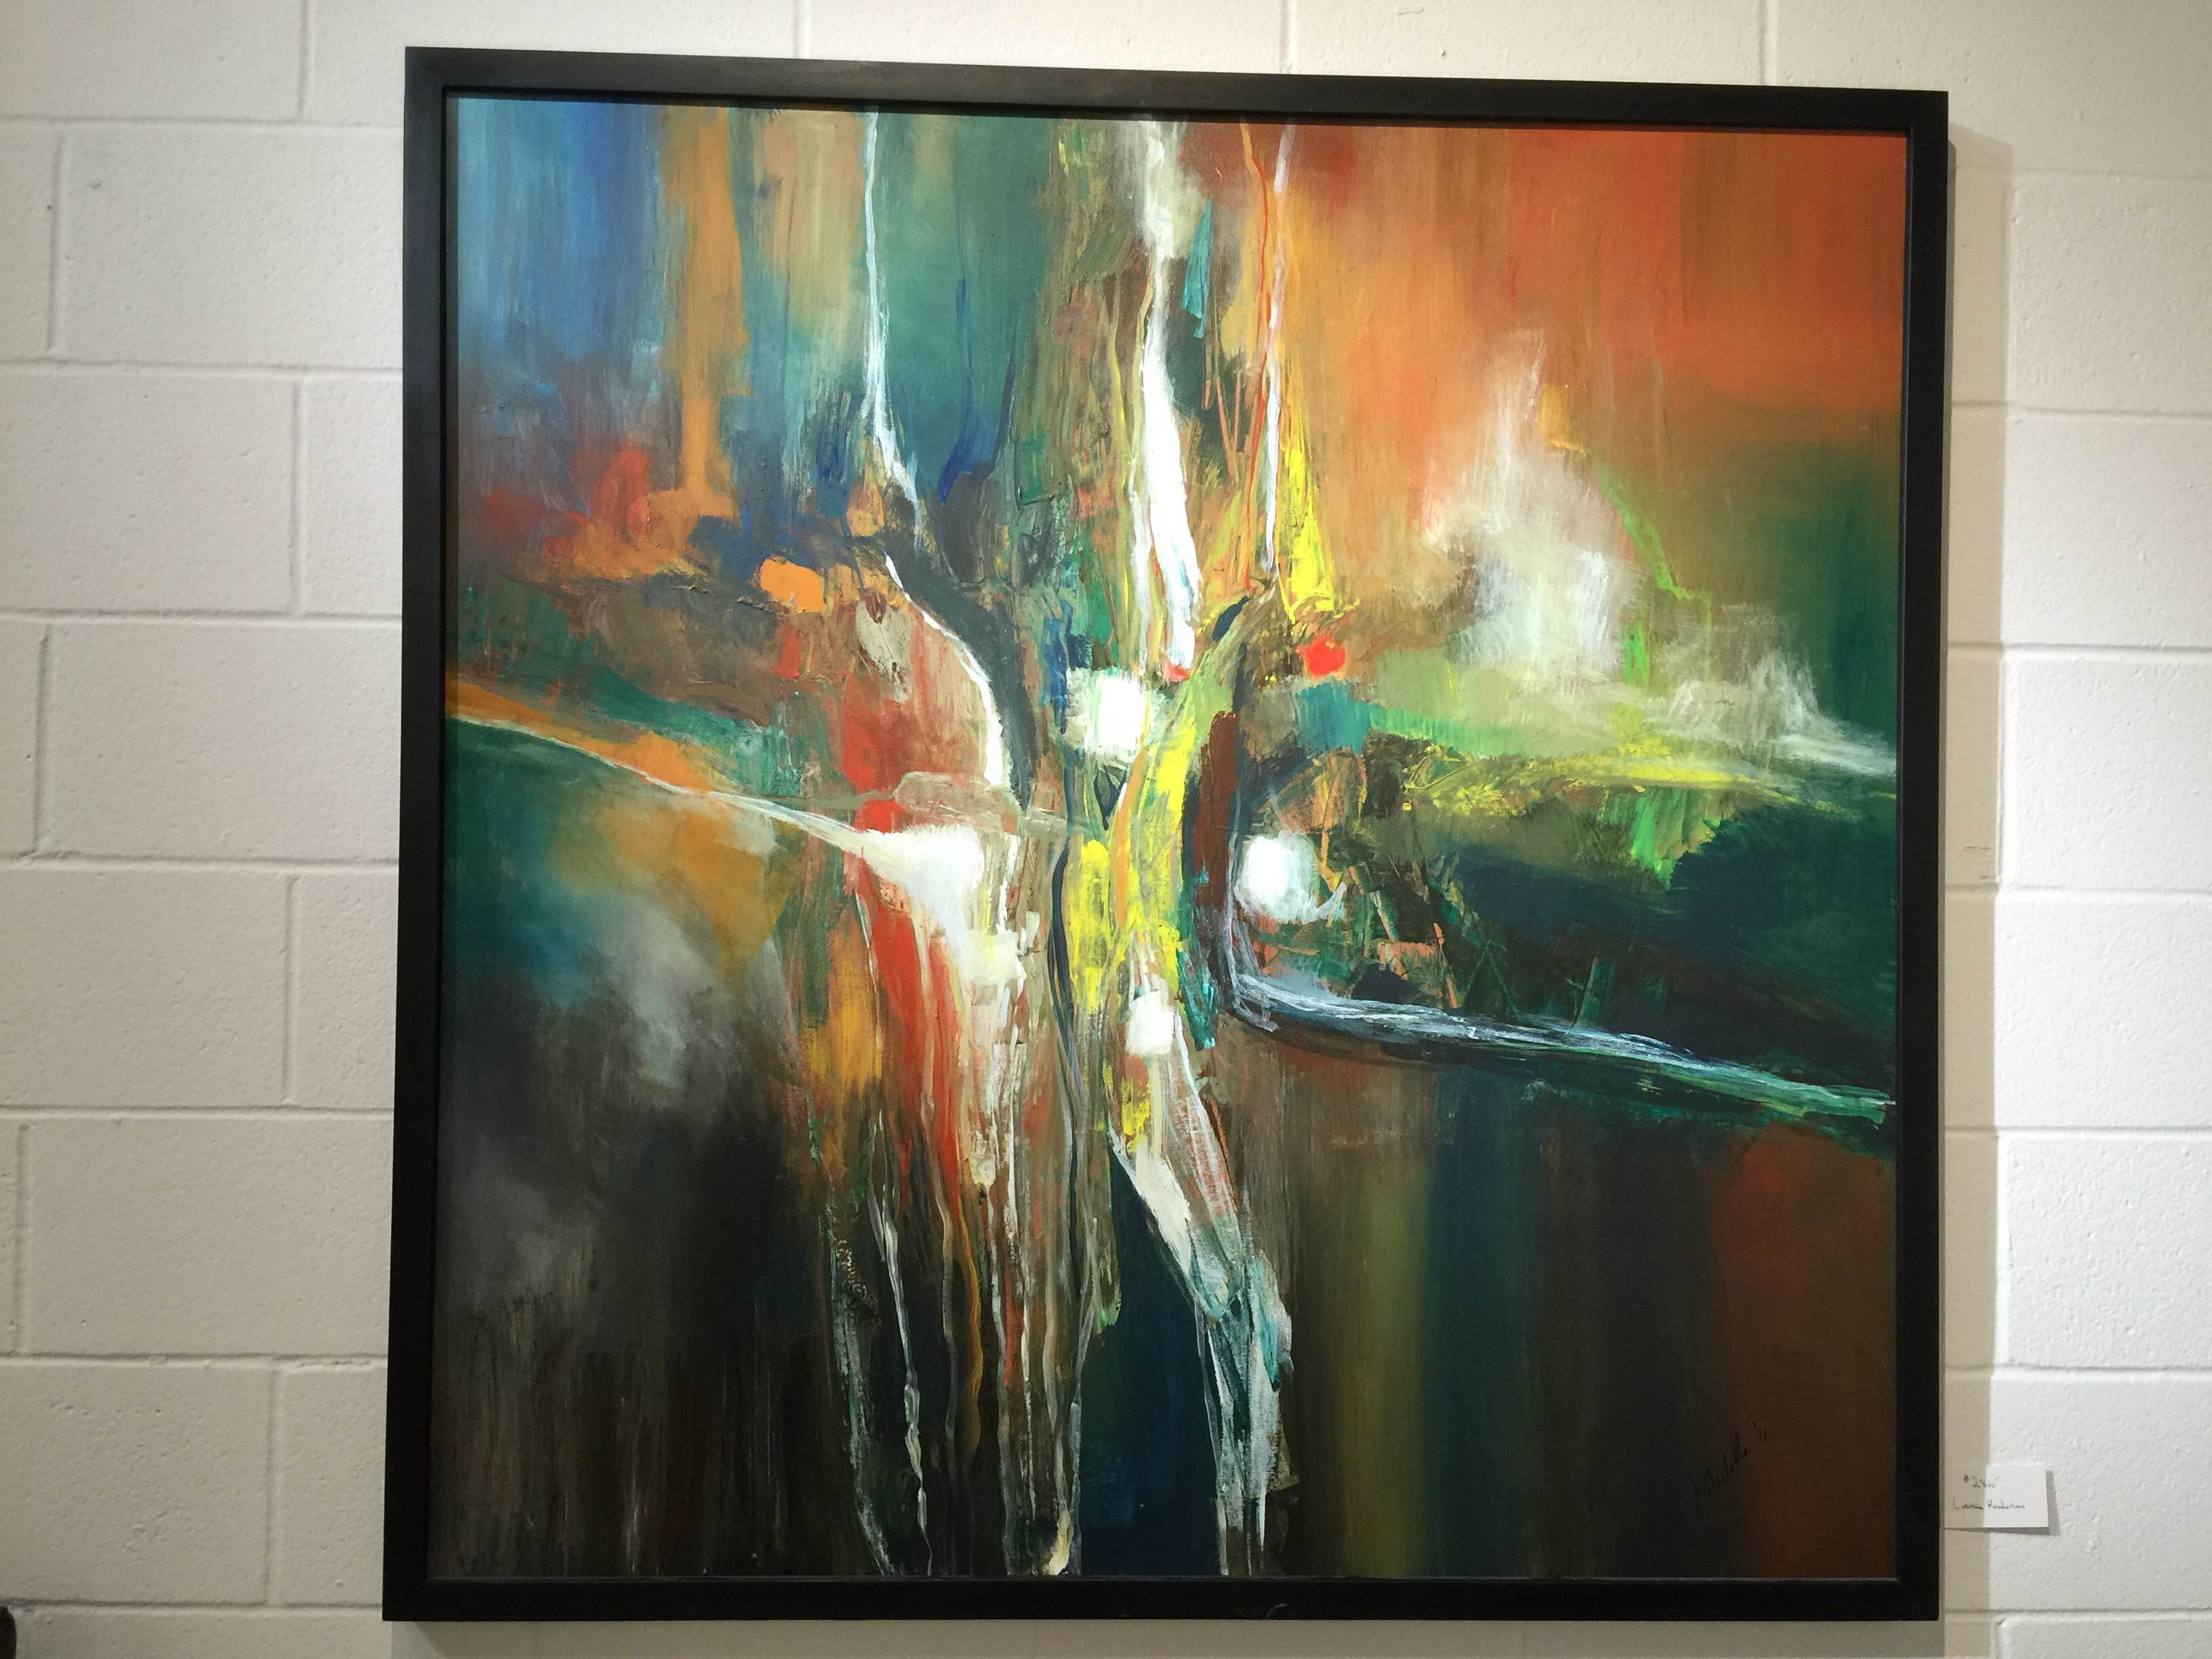 Watercolor art society houston tx - Artist Joseph Culotta Abstract Art Presented By The Gallery Girls Shown At Swank Interiors Houston Tx